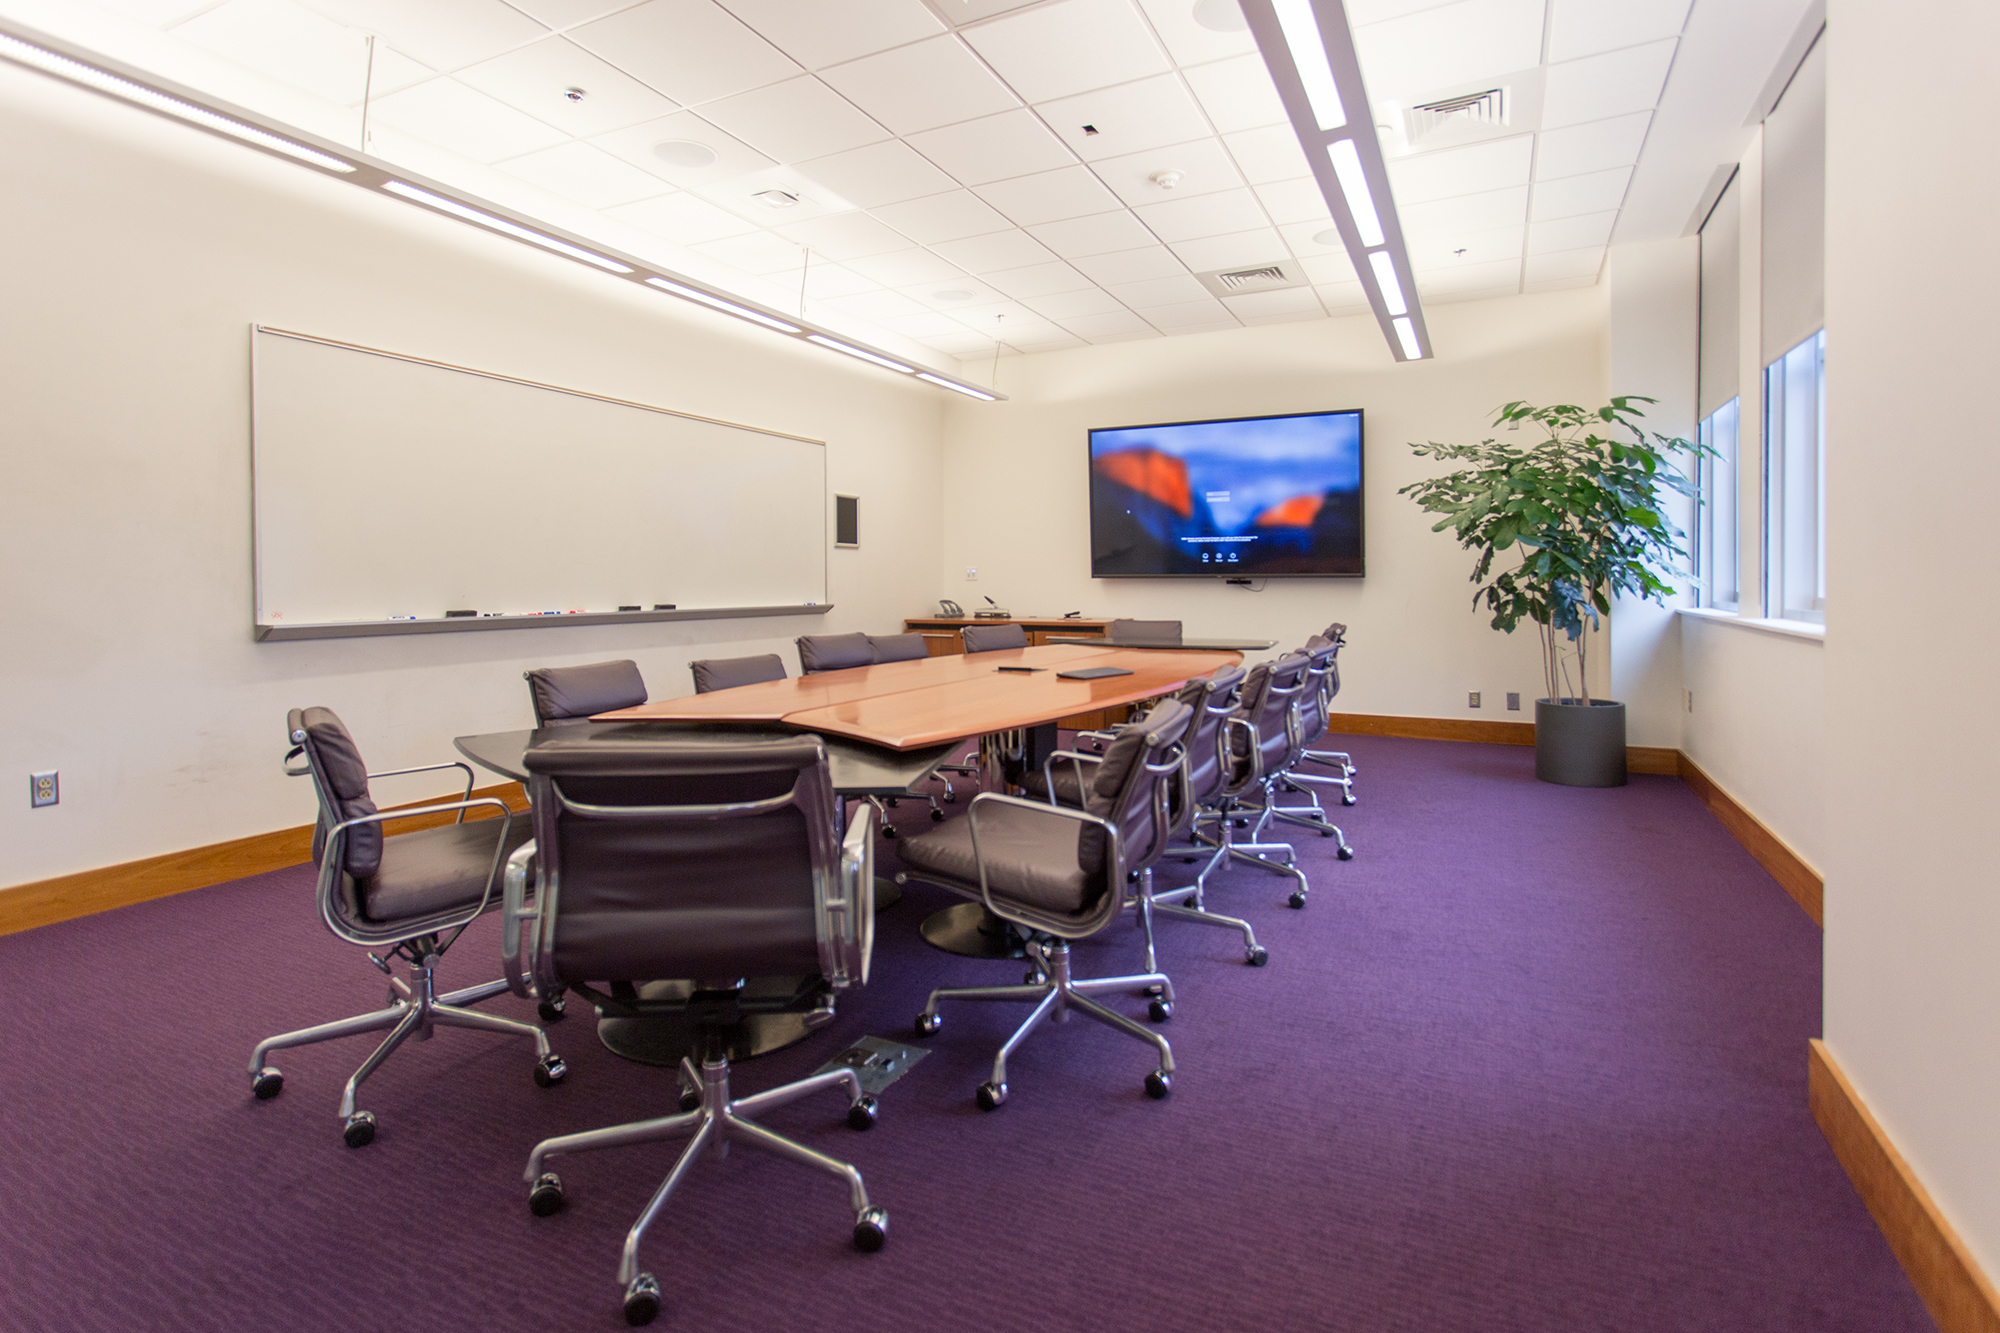 A large purple carpeted room with a whiteboard, wall mounted screen, conference table and ten chairs